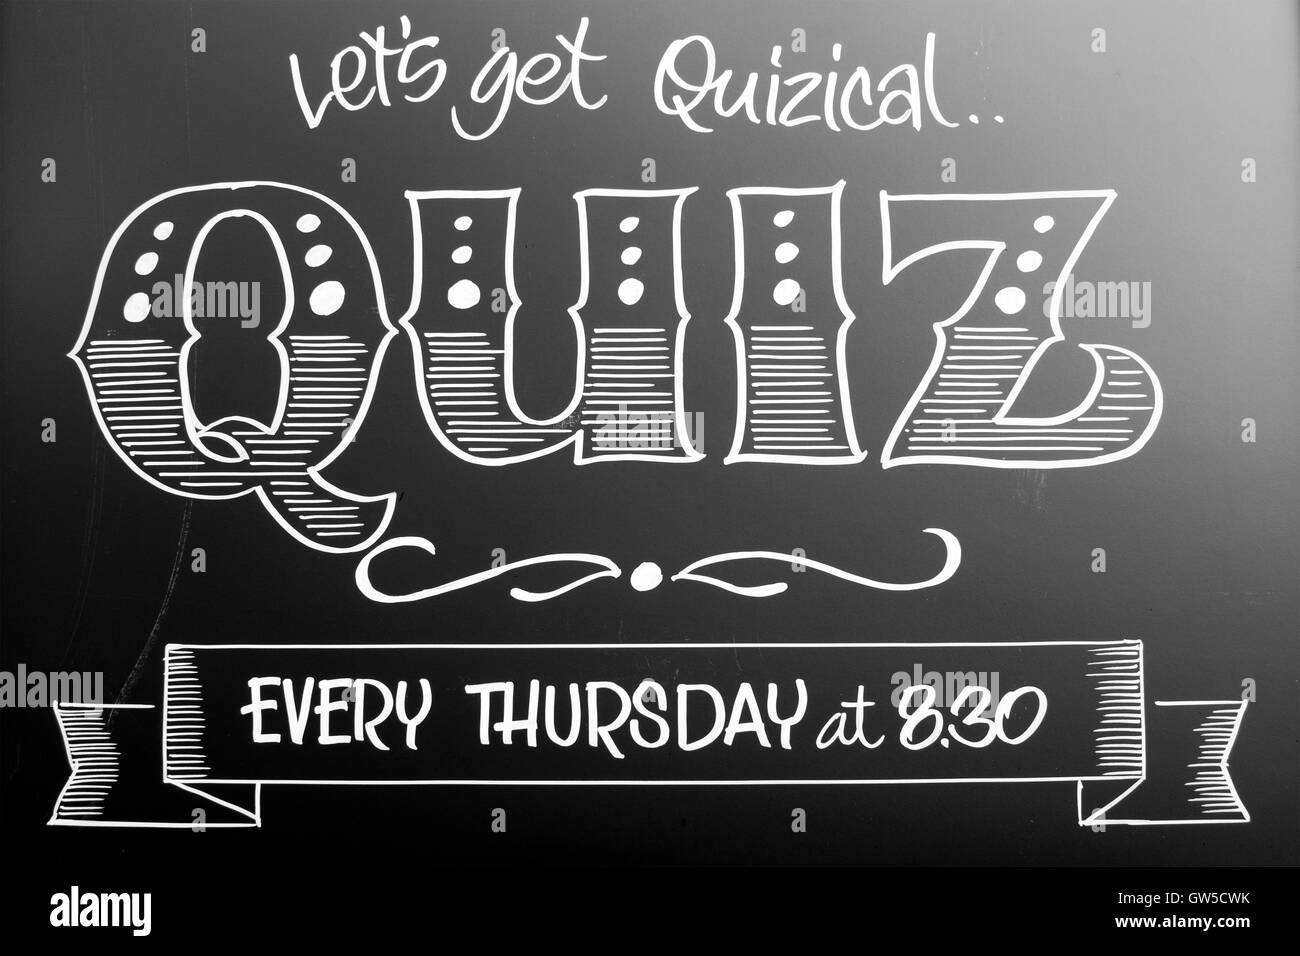 Quiz Night Stock Photos & Quiz Night Stock Images - Alamy